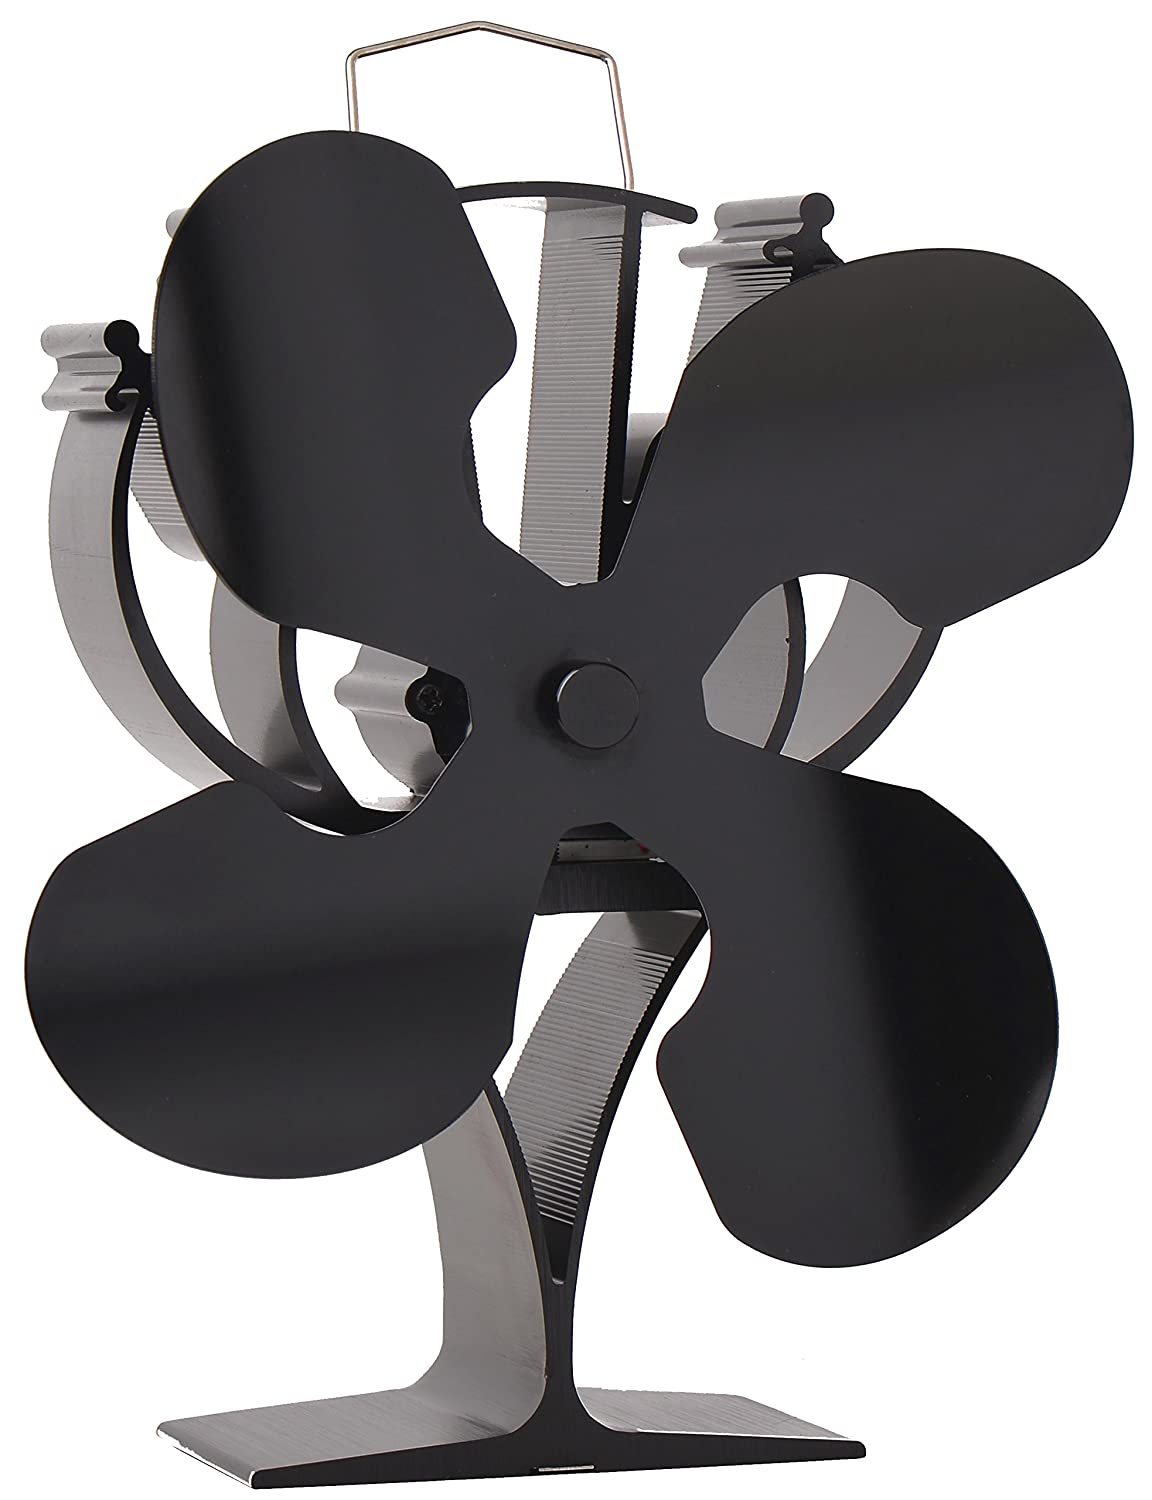 New designed 4 Blades Heat Powered Stove Fan for Wood / Log Burner/Fireplace - Eco Friendly(Black) L-Best stove accessary